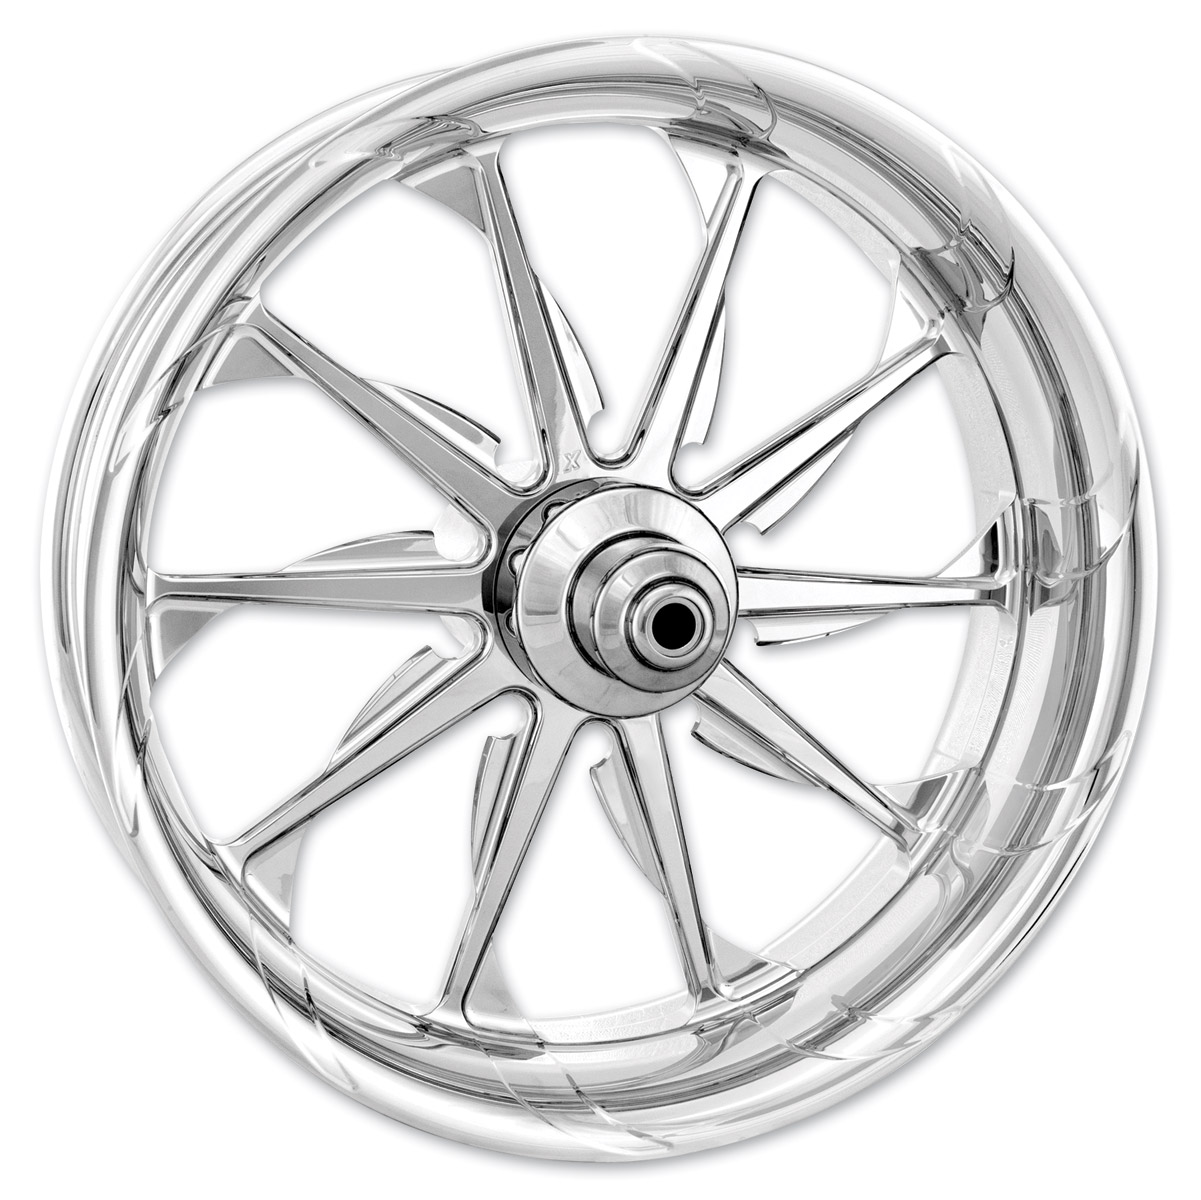 Xtreme Machine Chrome Forged Launch Front Wheel, 23″ x 3.5″ with ABS